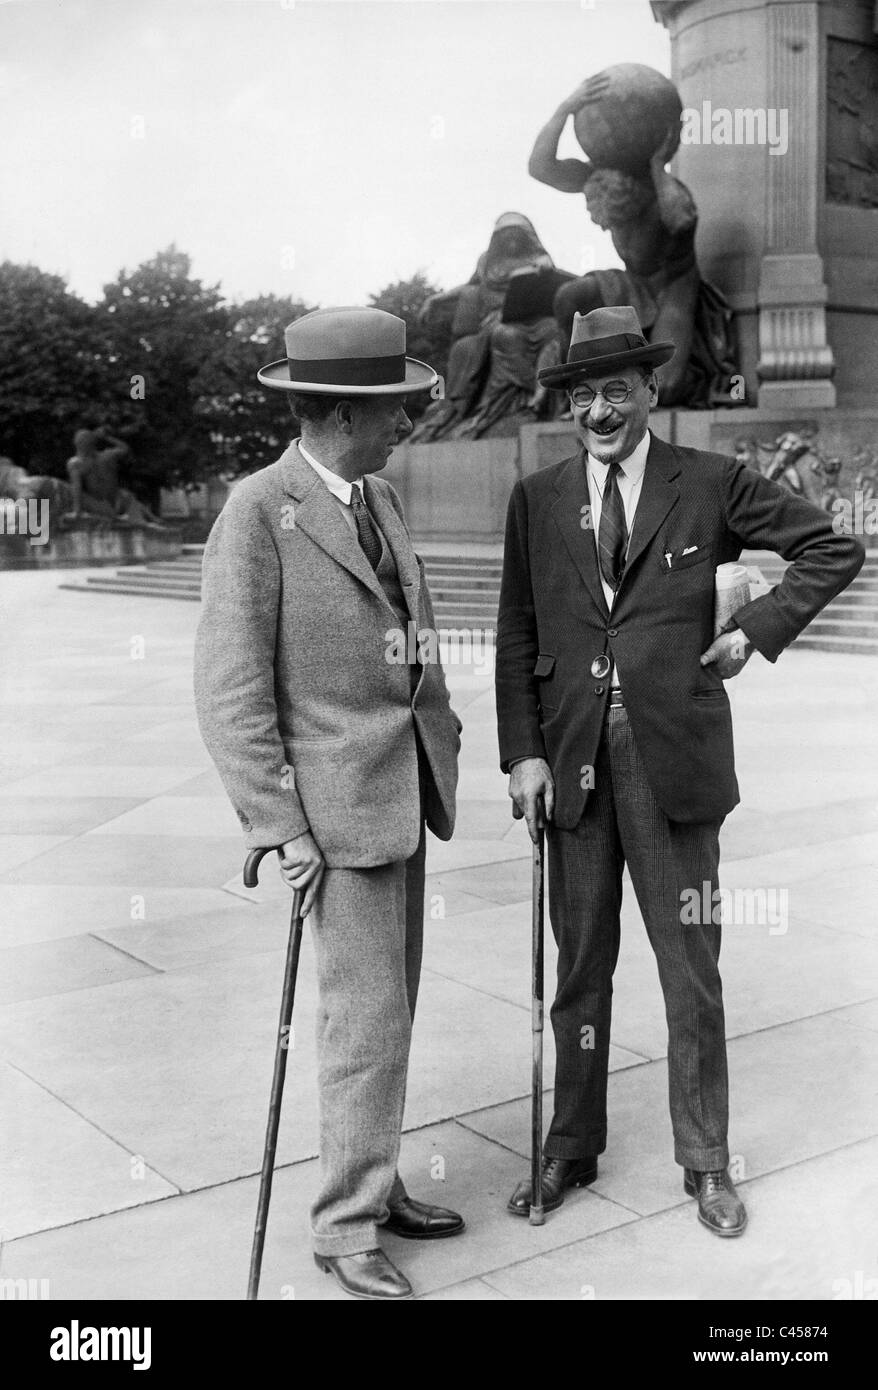 Sinclair Lewis and Count Karoly in Berlin, 1928 - Stock Image